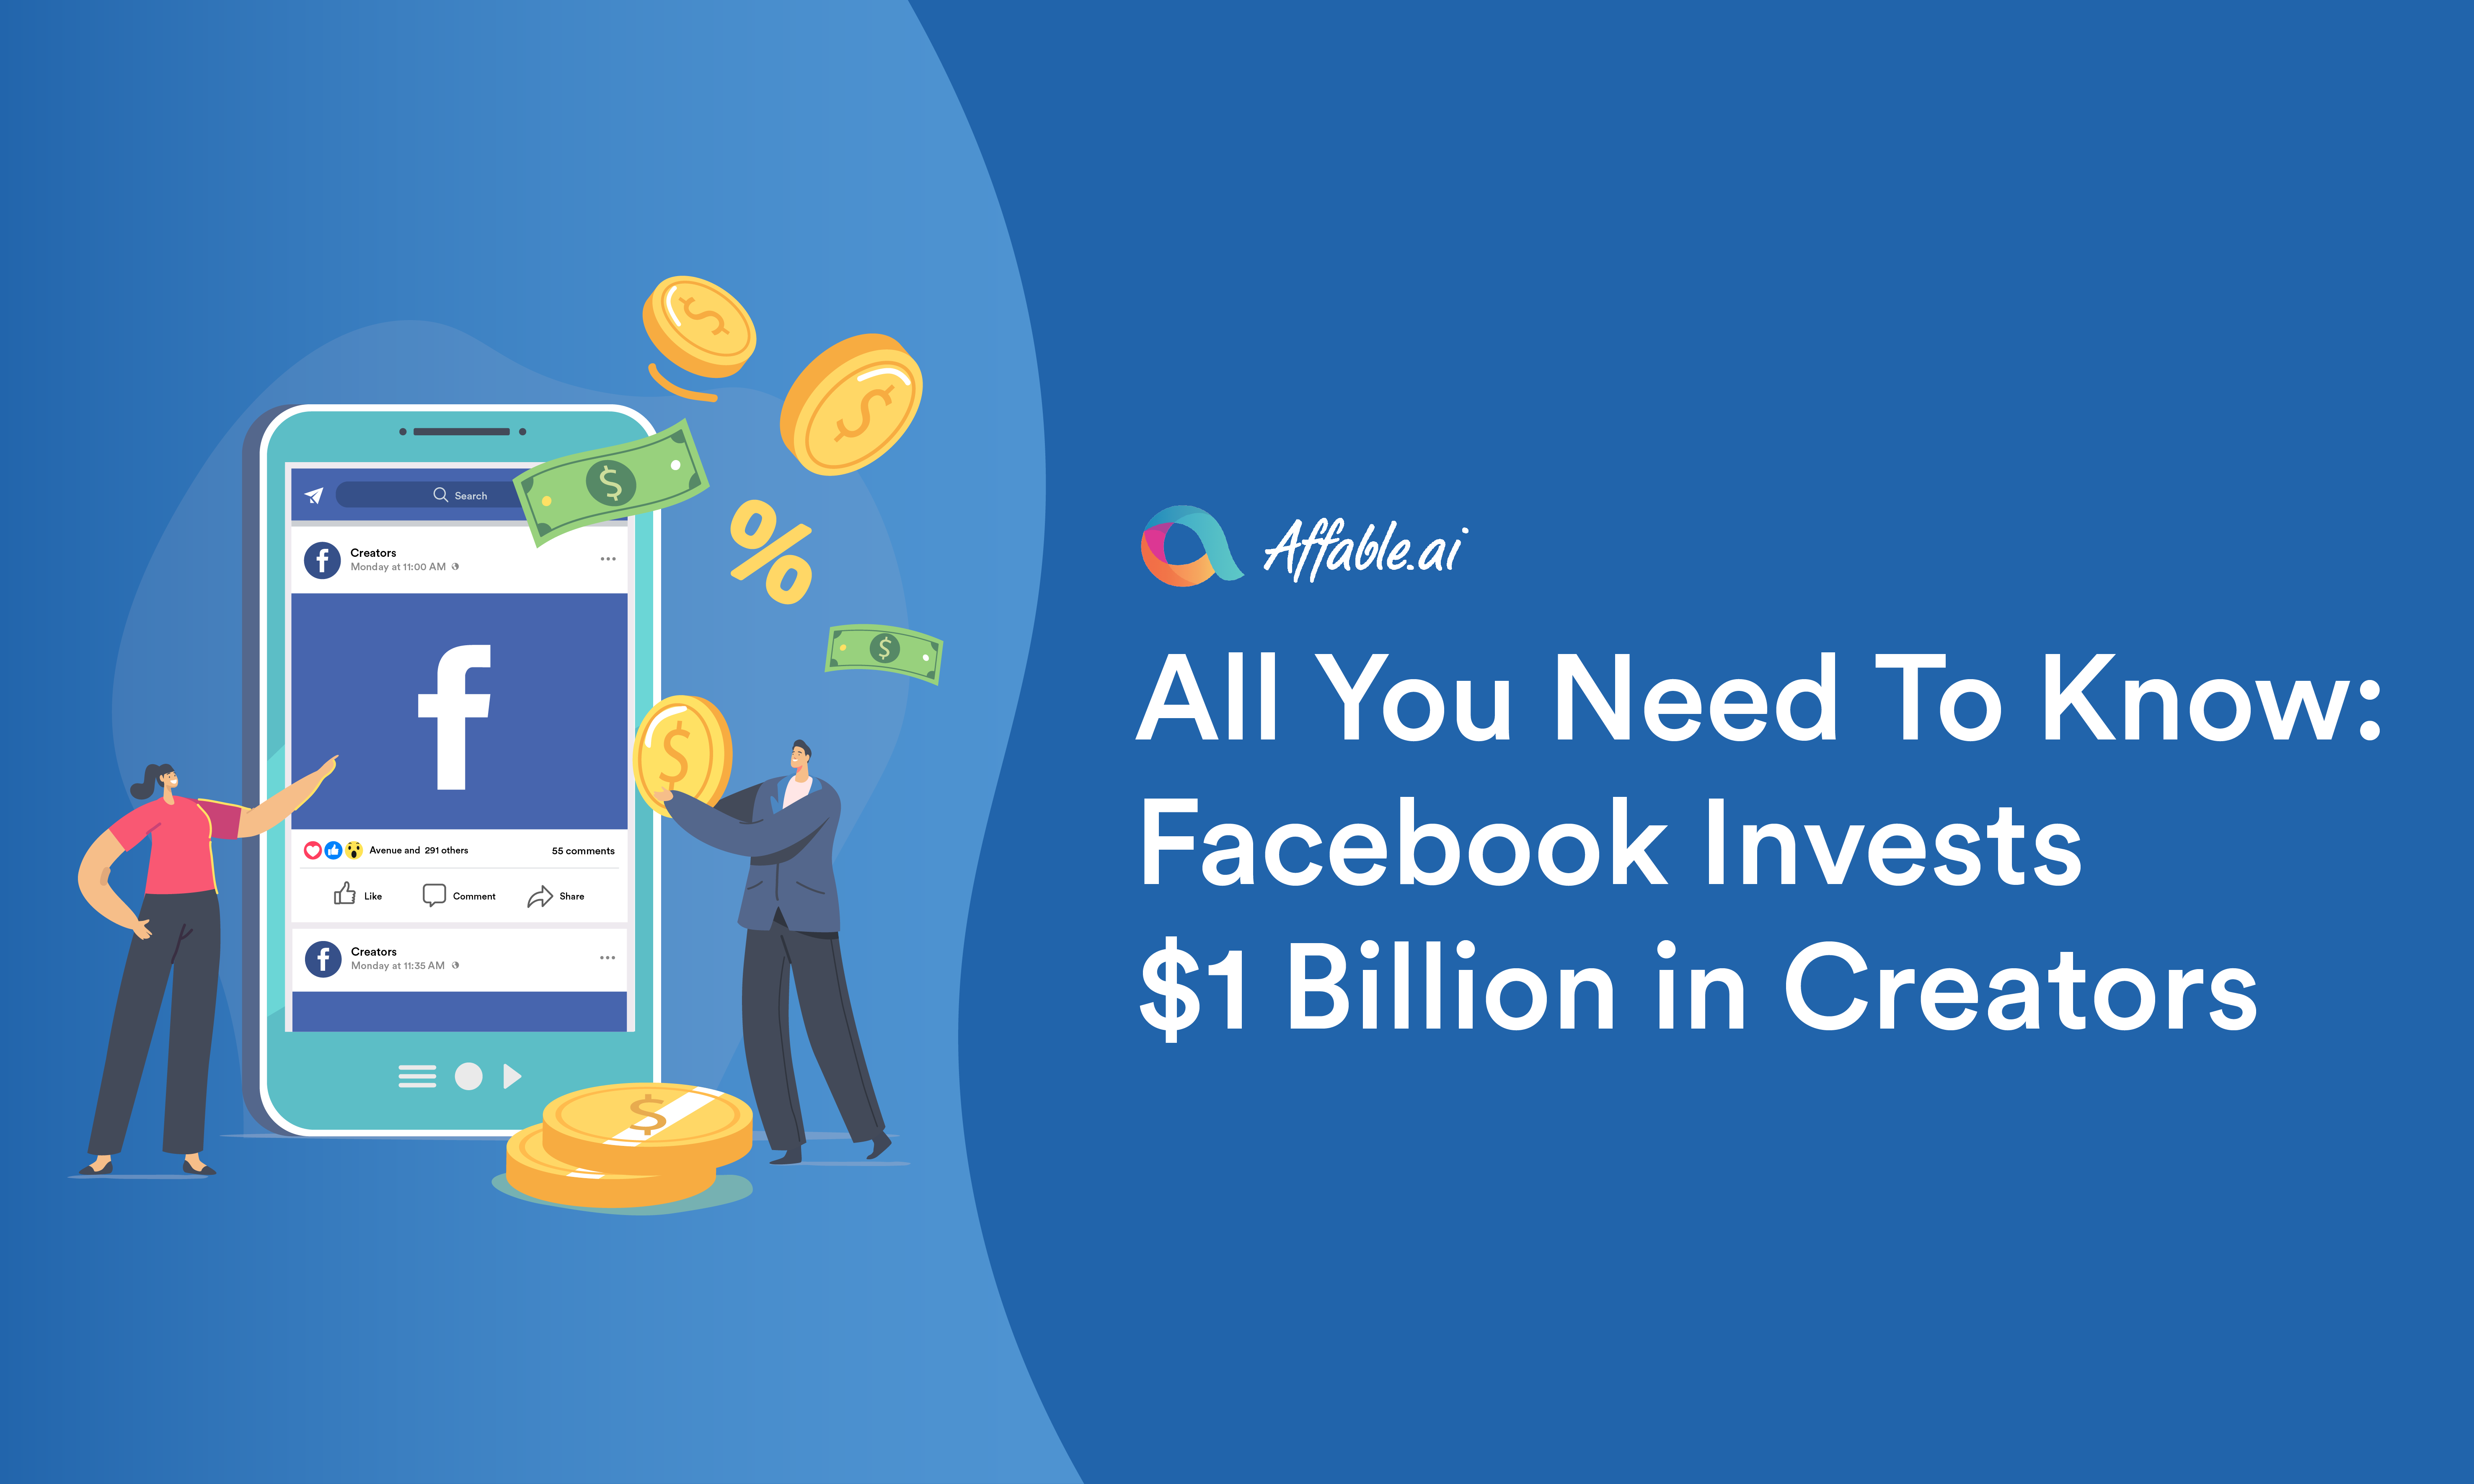 All You Need to Know: Facebook Invests $1 Billion in Creators